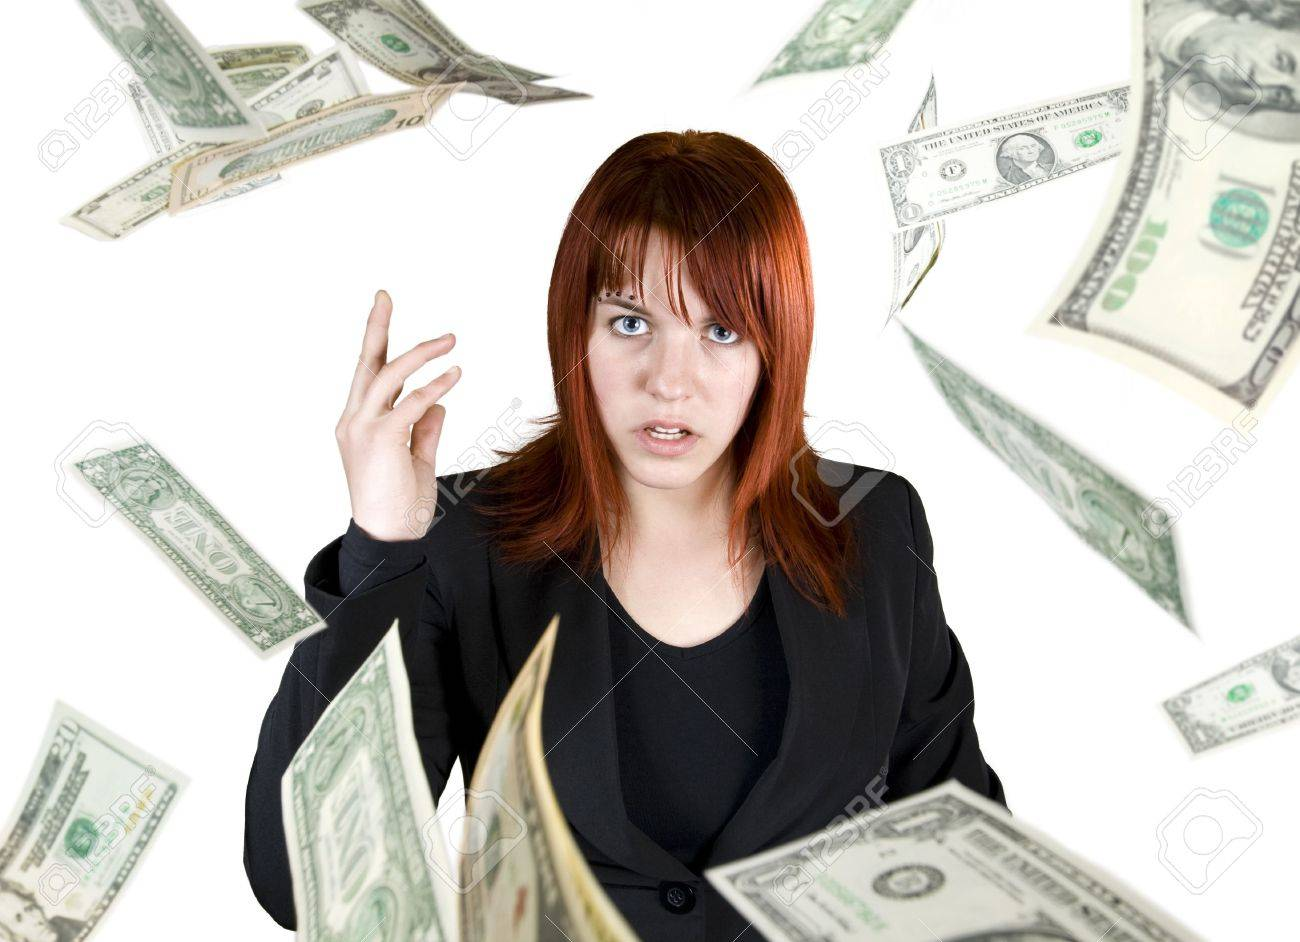 Angry and pretty redhead girl throwing Dollar banknote money towards the camera. Stock Photo - 2319888